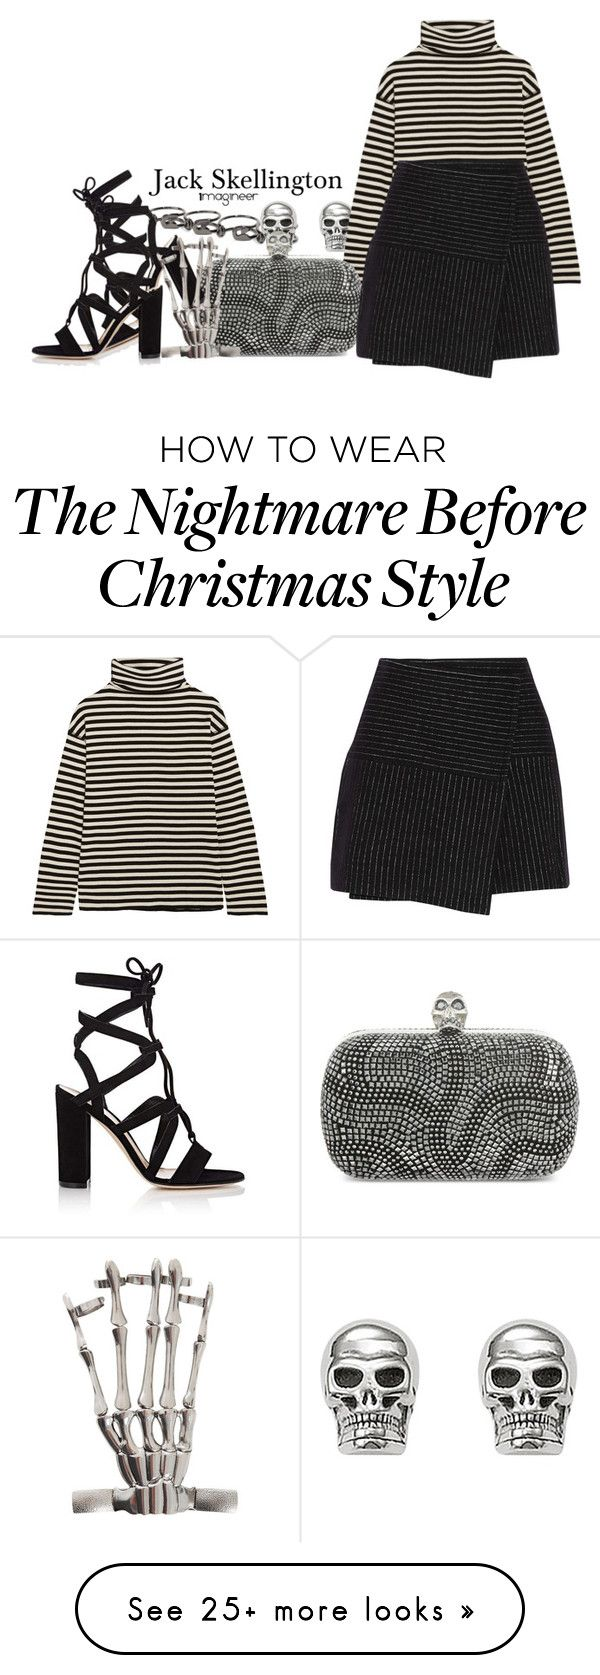 """""""Jack Skellington (The Nightmare Before Christmas)"""" by claucrasoda on Polyvore featuring Maison Margiela, Thomas Sabo, SJYP, Alexander McQueen, Alice + Olivia, Gianvito Rossi, Hot Topic, stripesonstripes and PatternChallenge"""